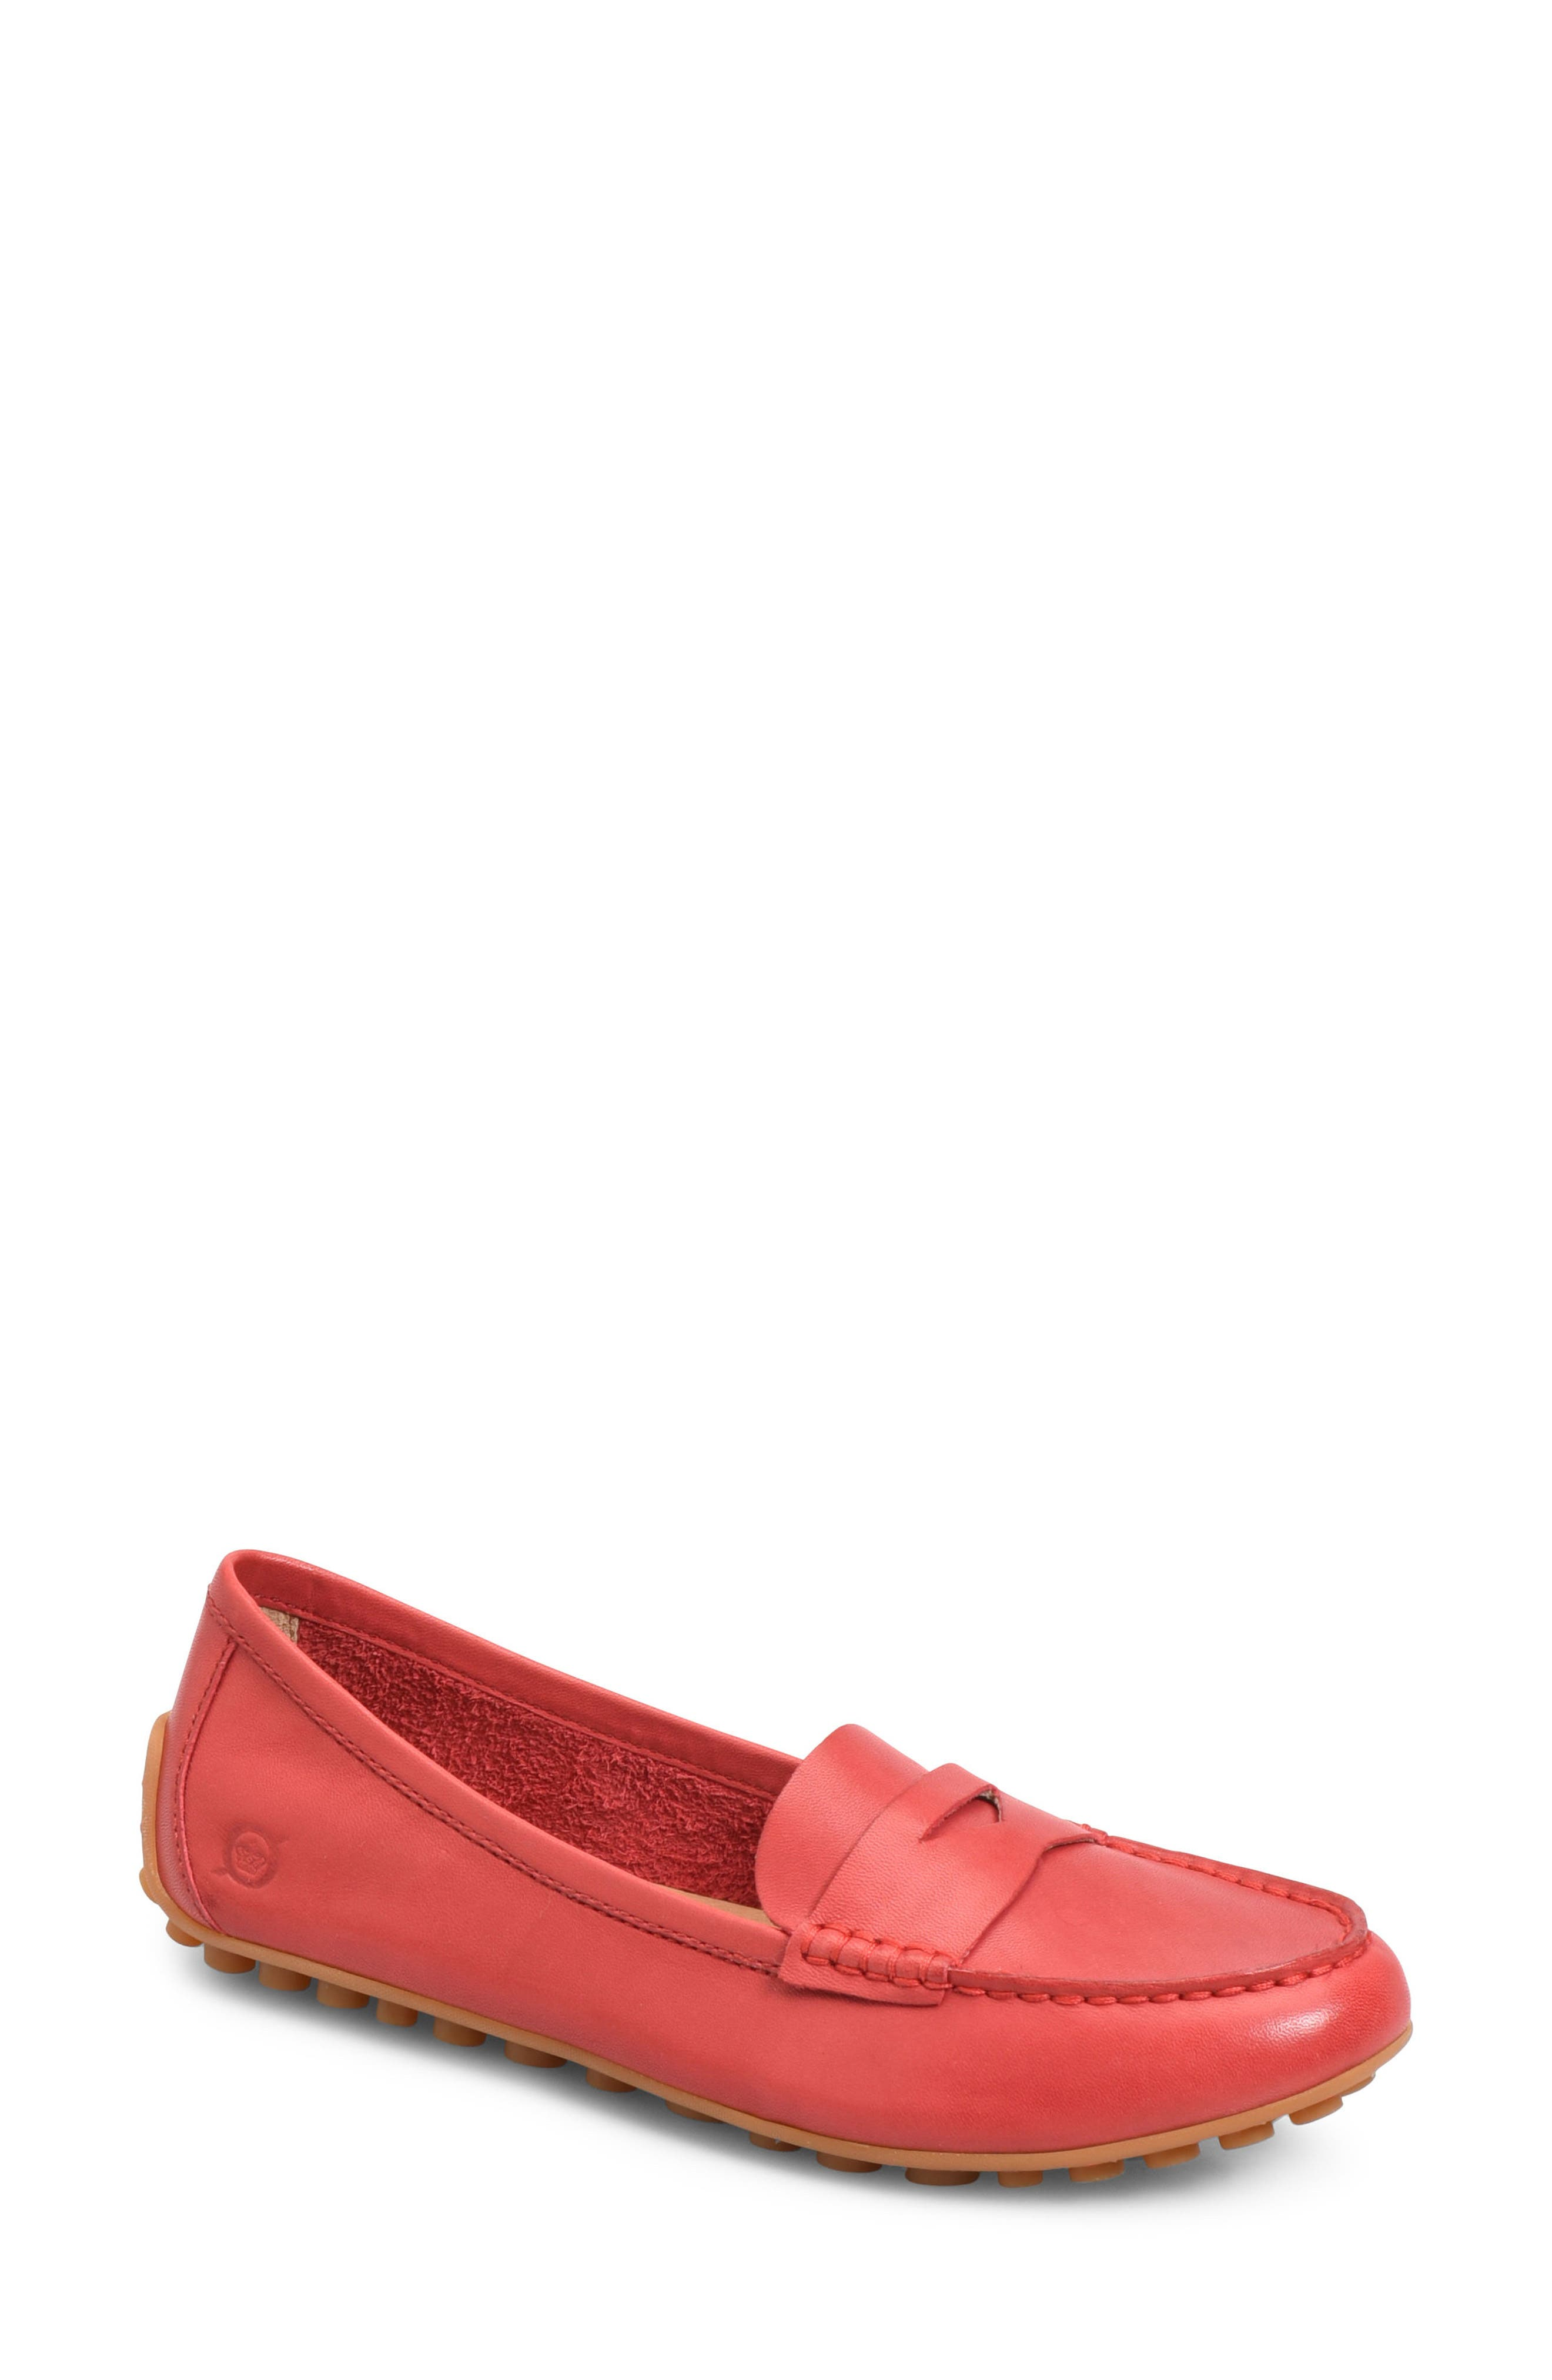 Malena Driving Loafer,                         Main,                         color, RED LEATHER